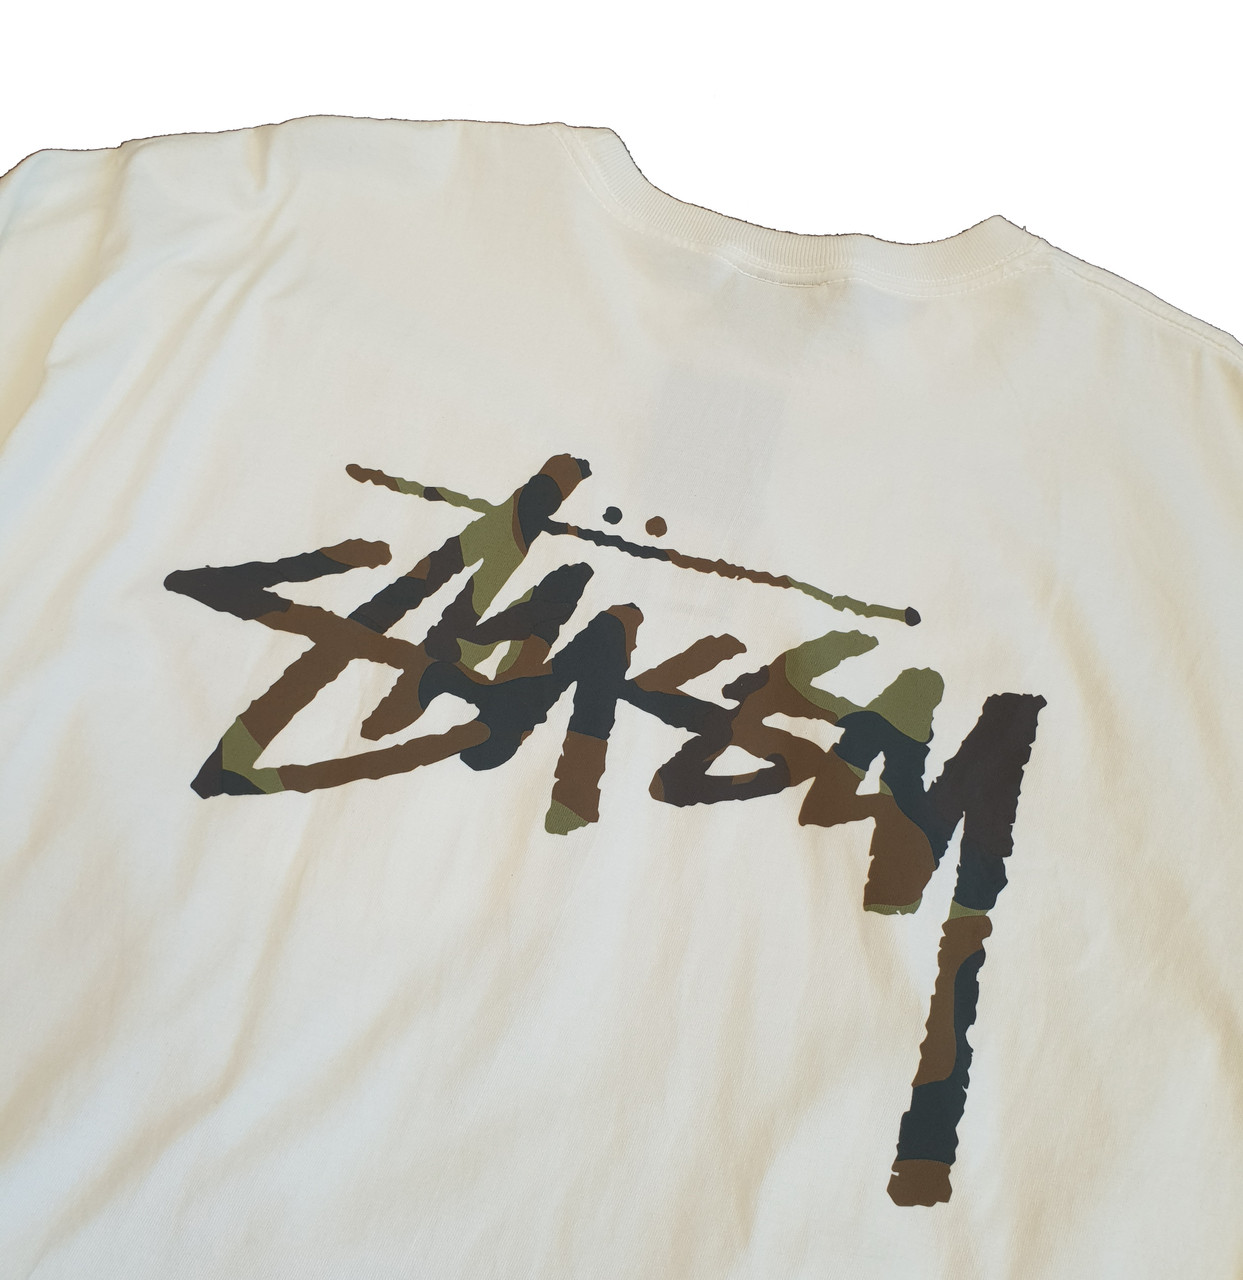 0bdfa799 Stussy Camo Stock Pigment Dyed Pocket Tee - Natural. Your Price: £44.95  (You save £27.00). Image 1. Larger / More Photos